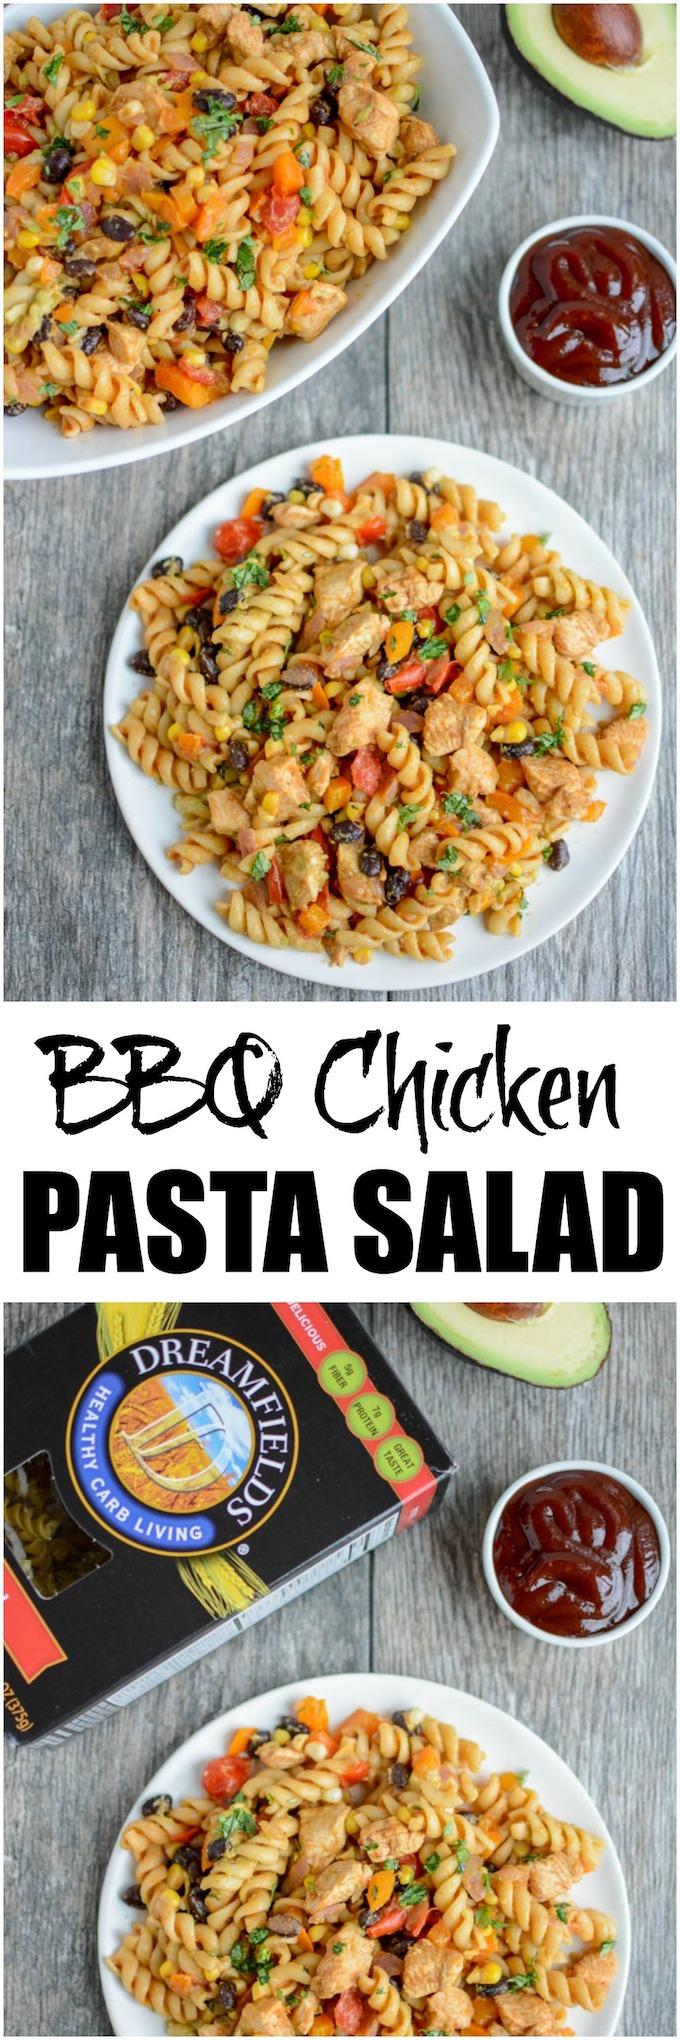 This BBQ Chicken Pasta Salad is perfect for everything from dinner on a hot night to a summer picnic or cookout. It's packed with protein, fiber, and vegetables and can be made ahead of time!